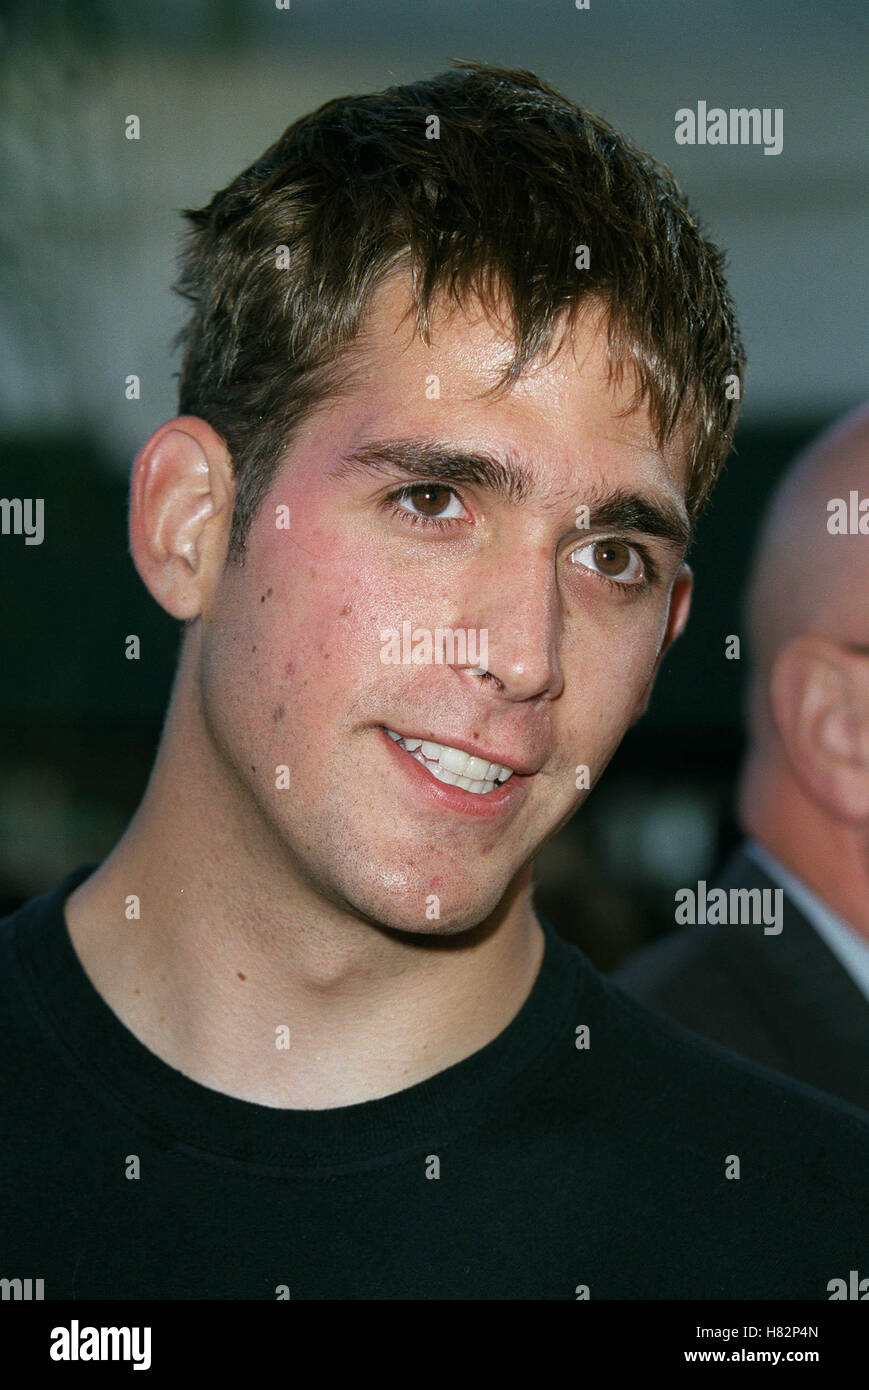 ERIC SZMANDA 'FAST AND FURIOUS' FILM PREMIERE LOS ANGELES USA 18 June 2001 - Stock Image